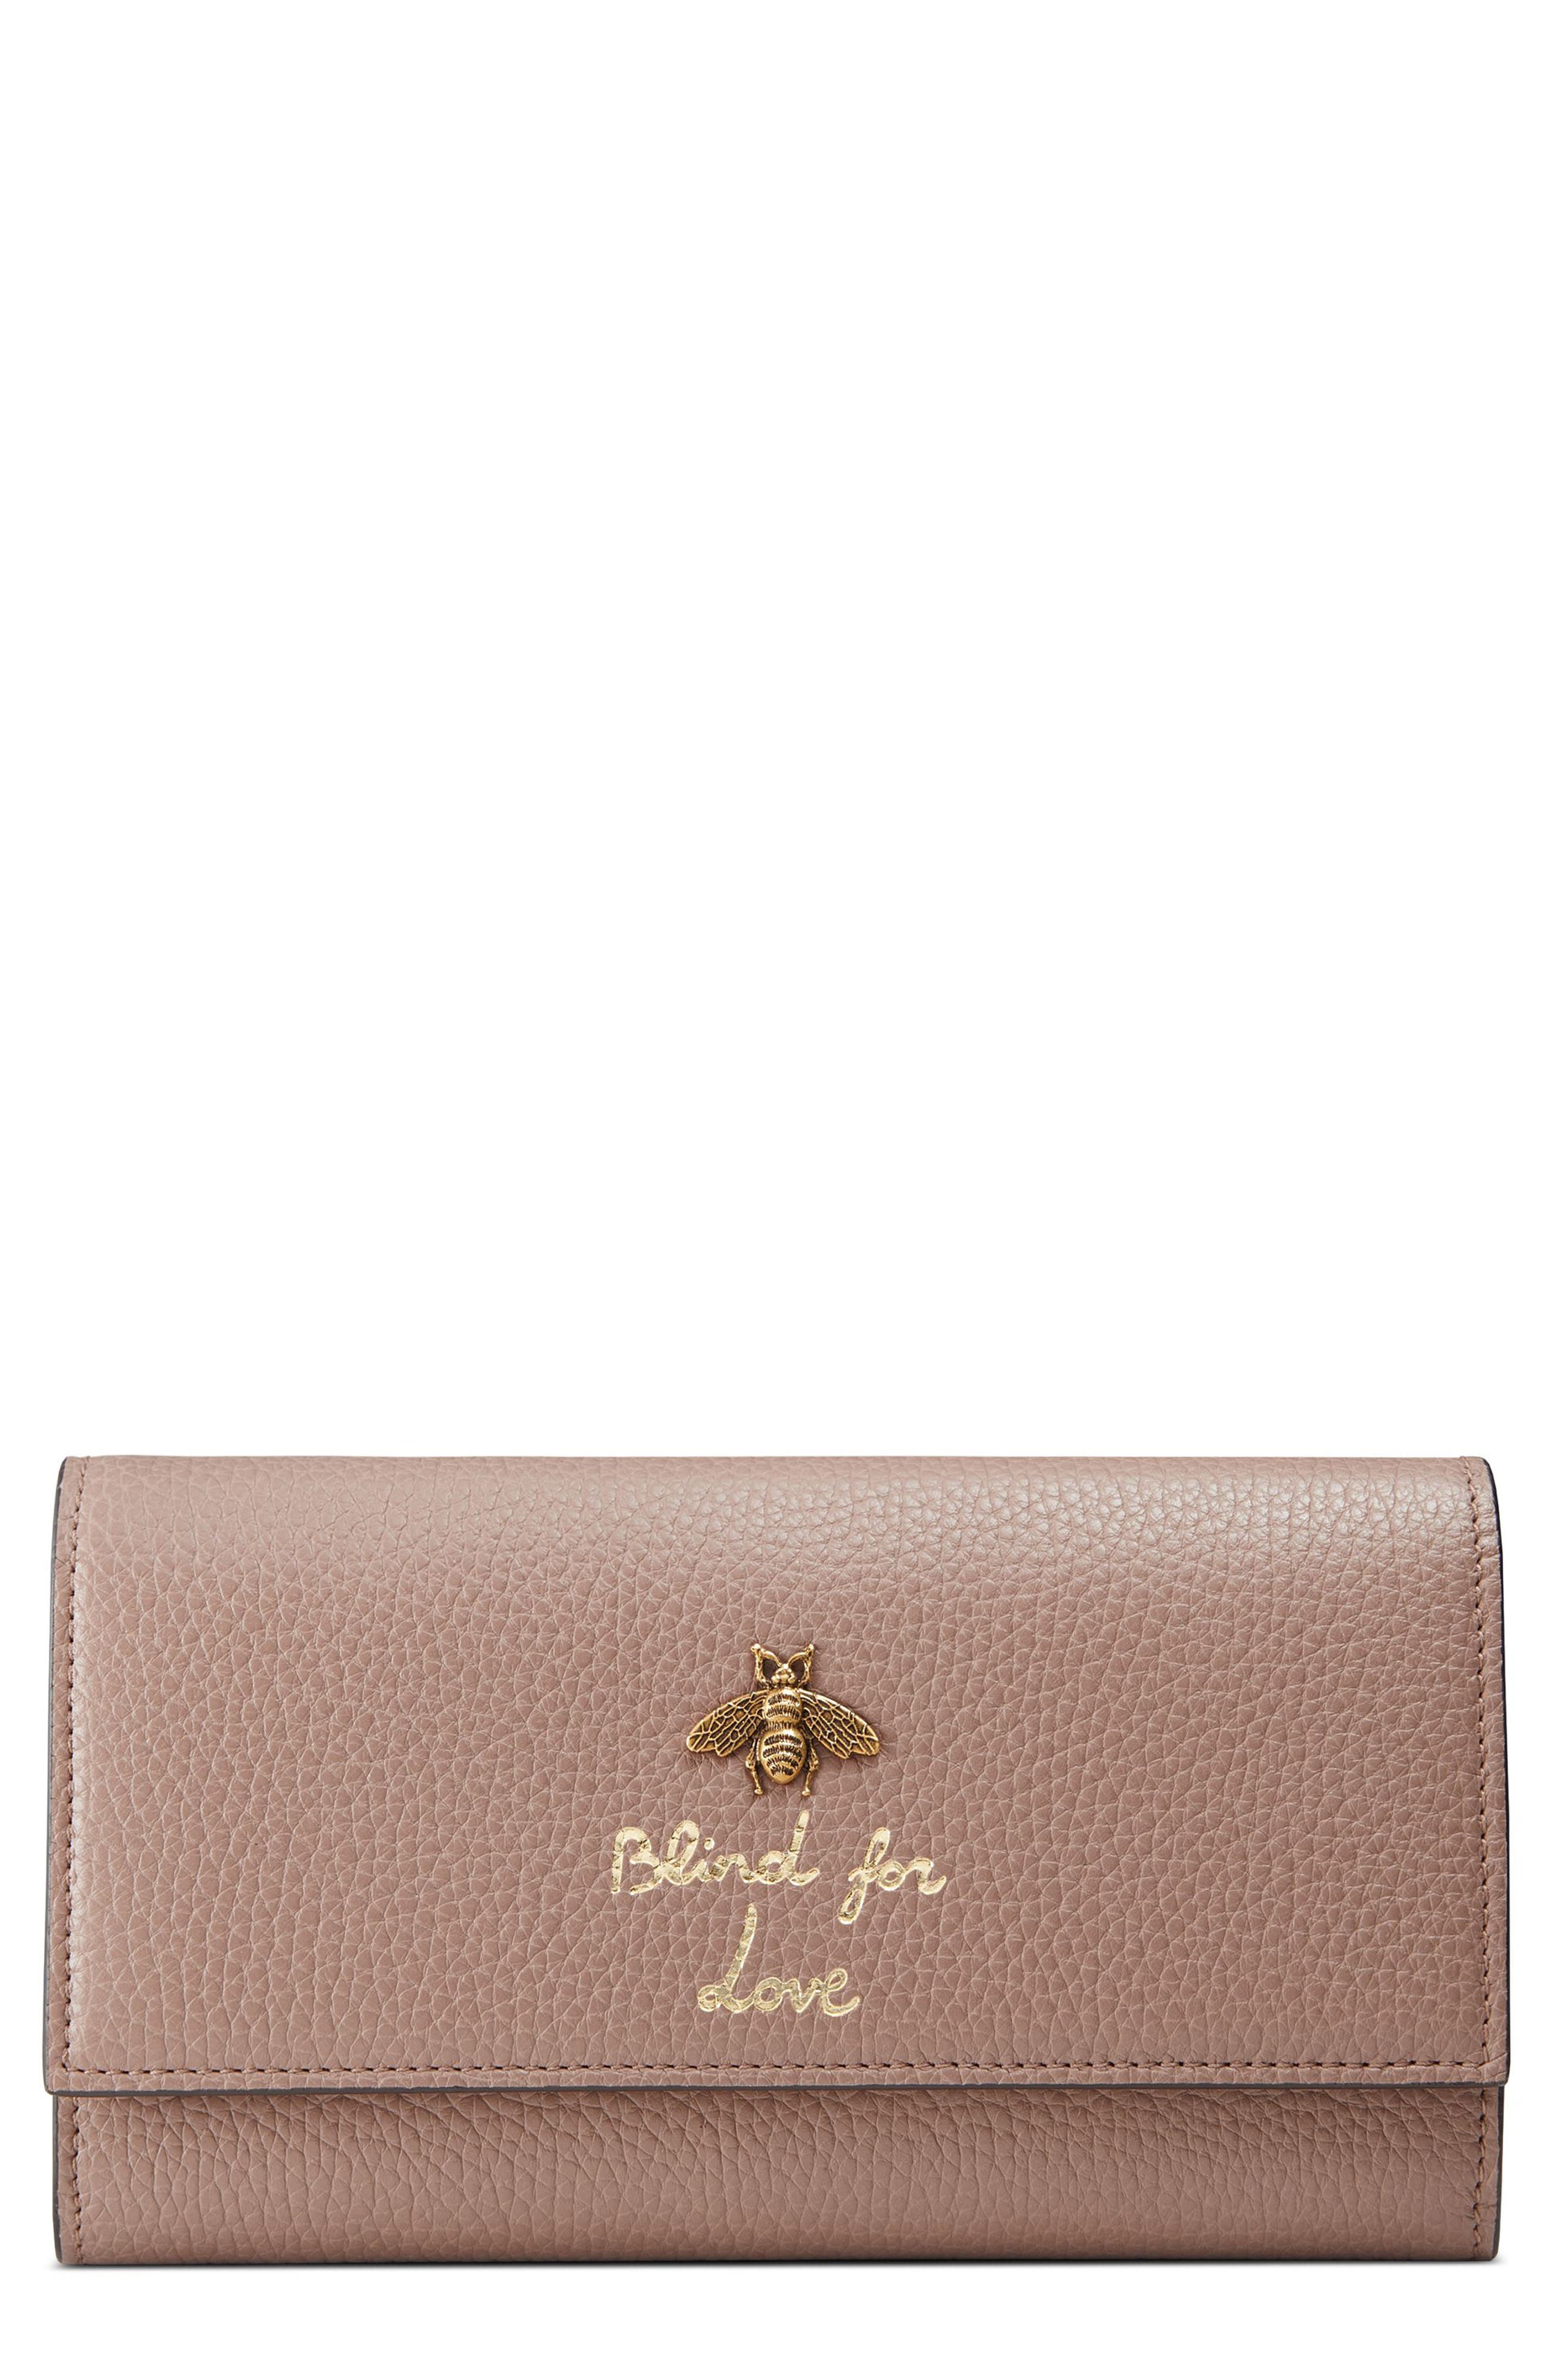 Animalier Bee Leather Continental Wallet,                         Main,                         color, Porcelain Rose